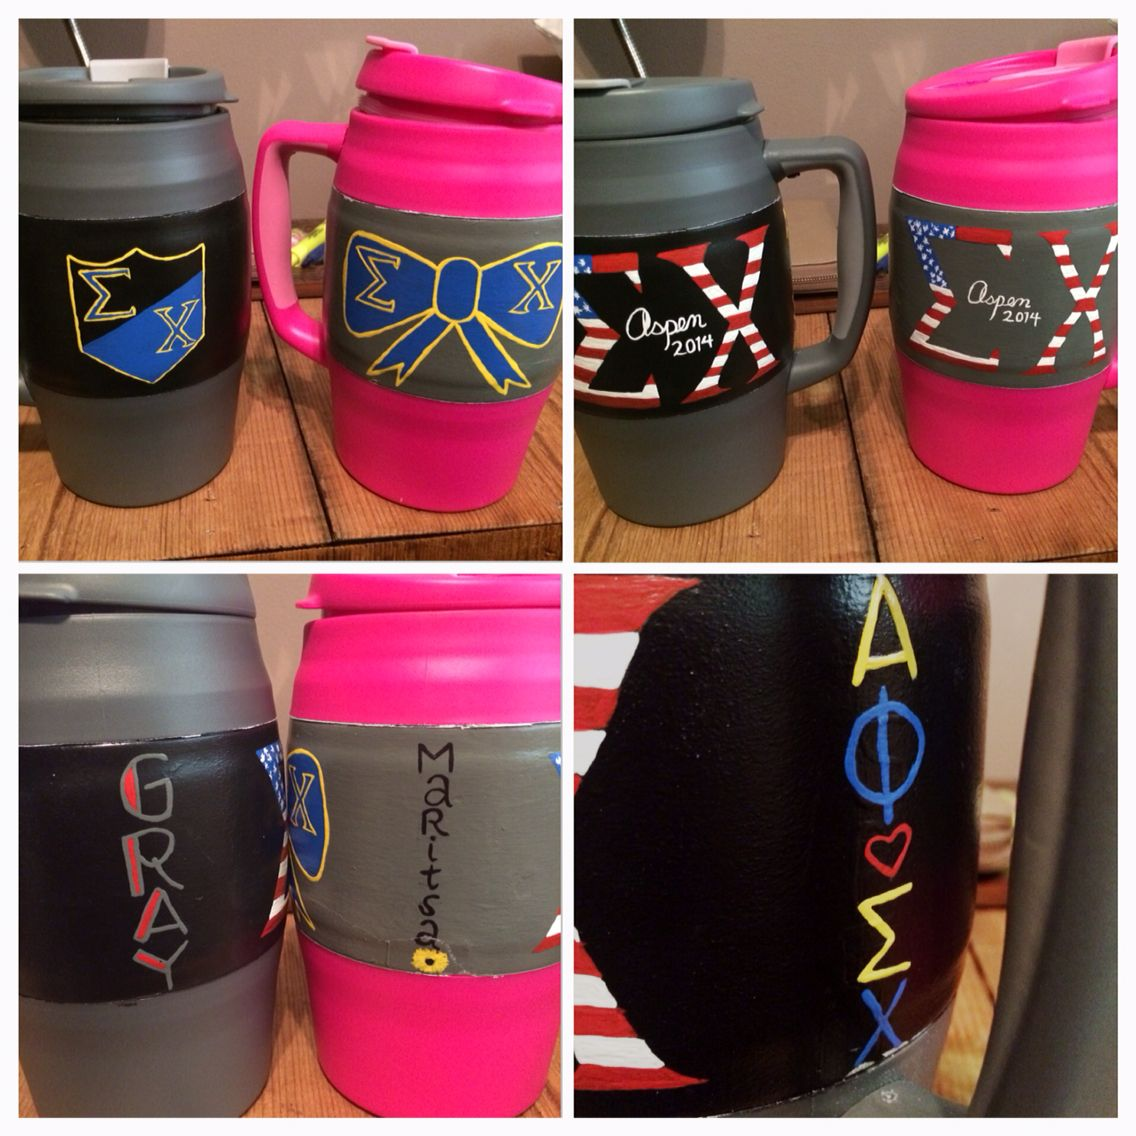 Made some Sigma Chi bubba kegs. Aspen Formal 2014. Alpha Phi.